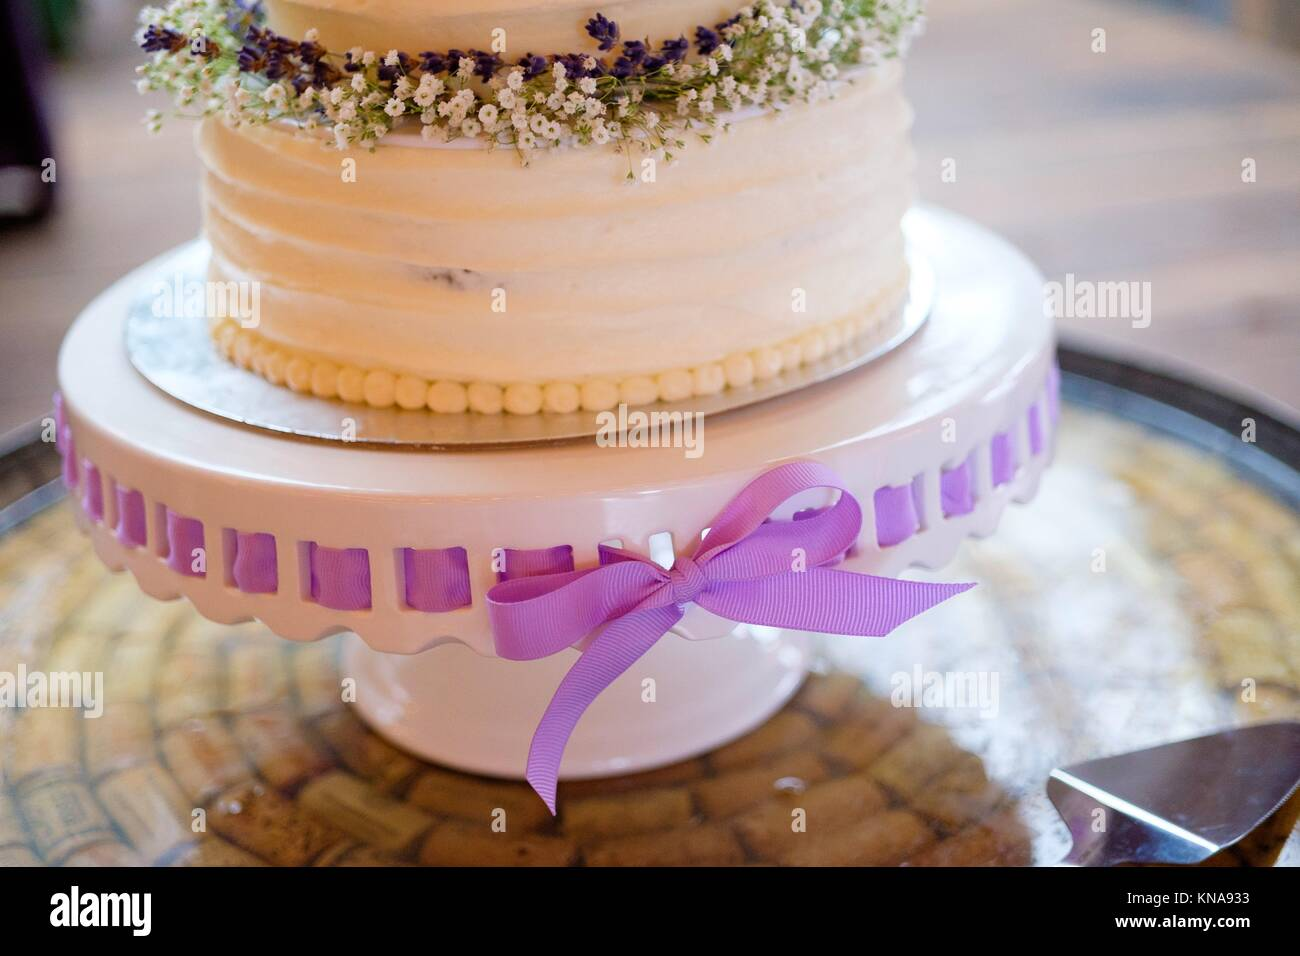 White wedding cake with a lavendar ribbon on a cakestand at a reception. - Stock Image